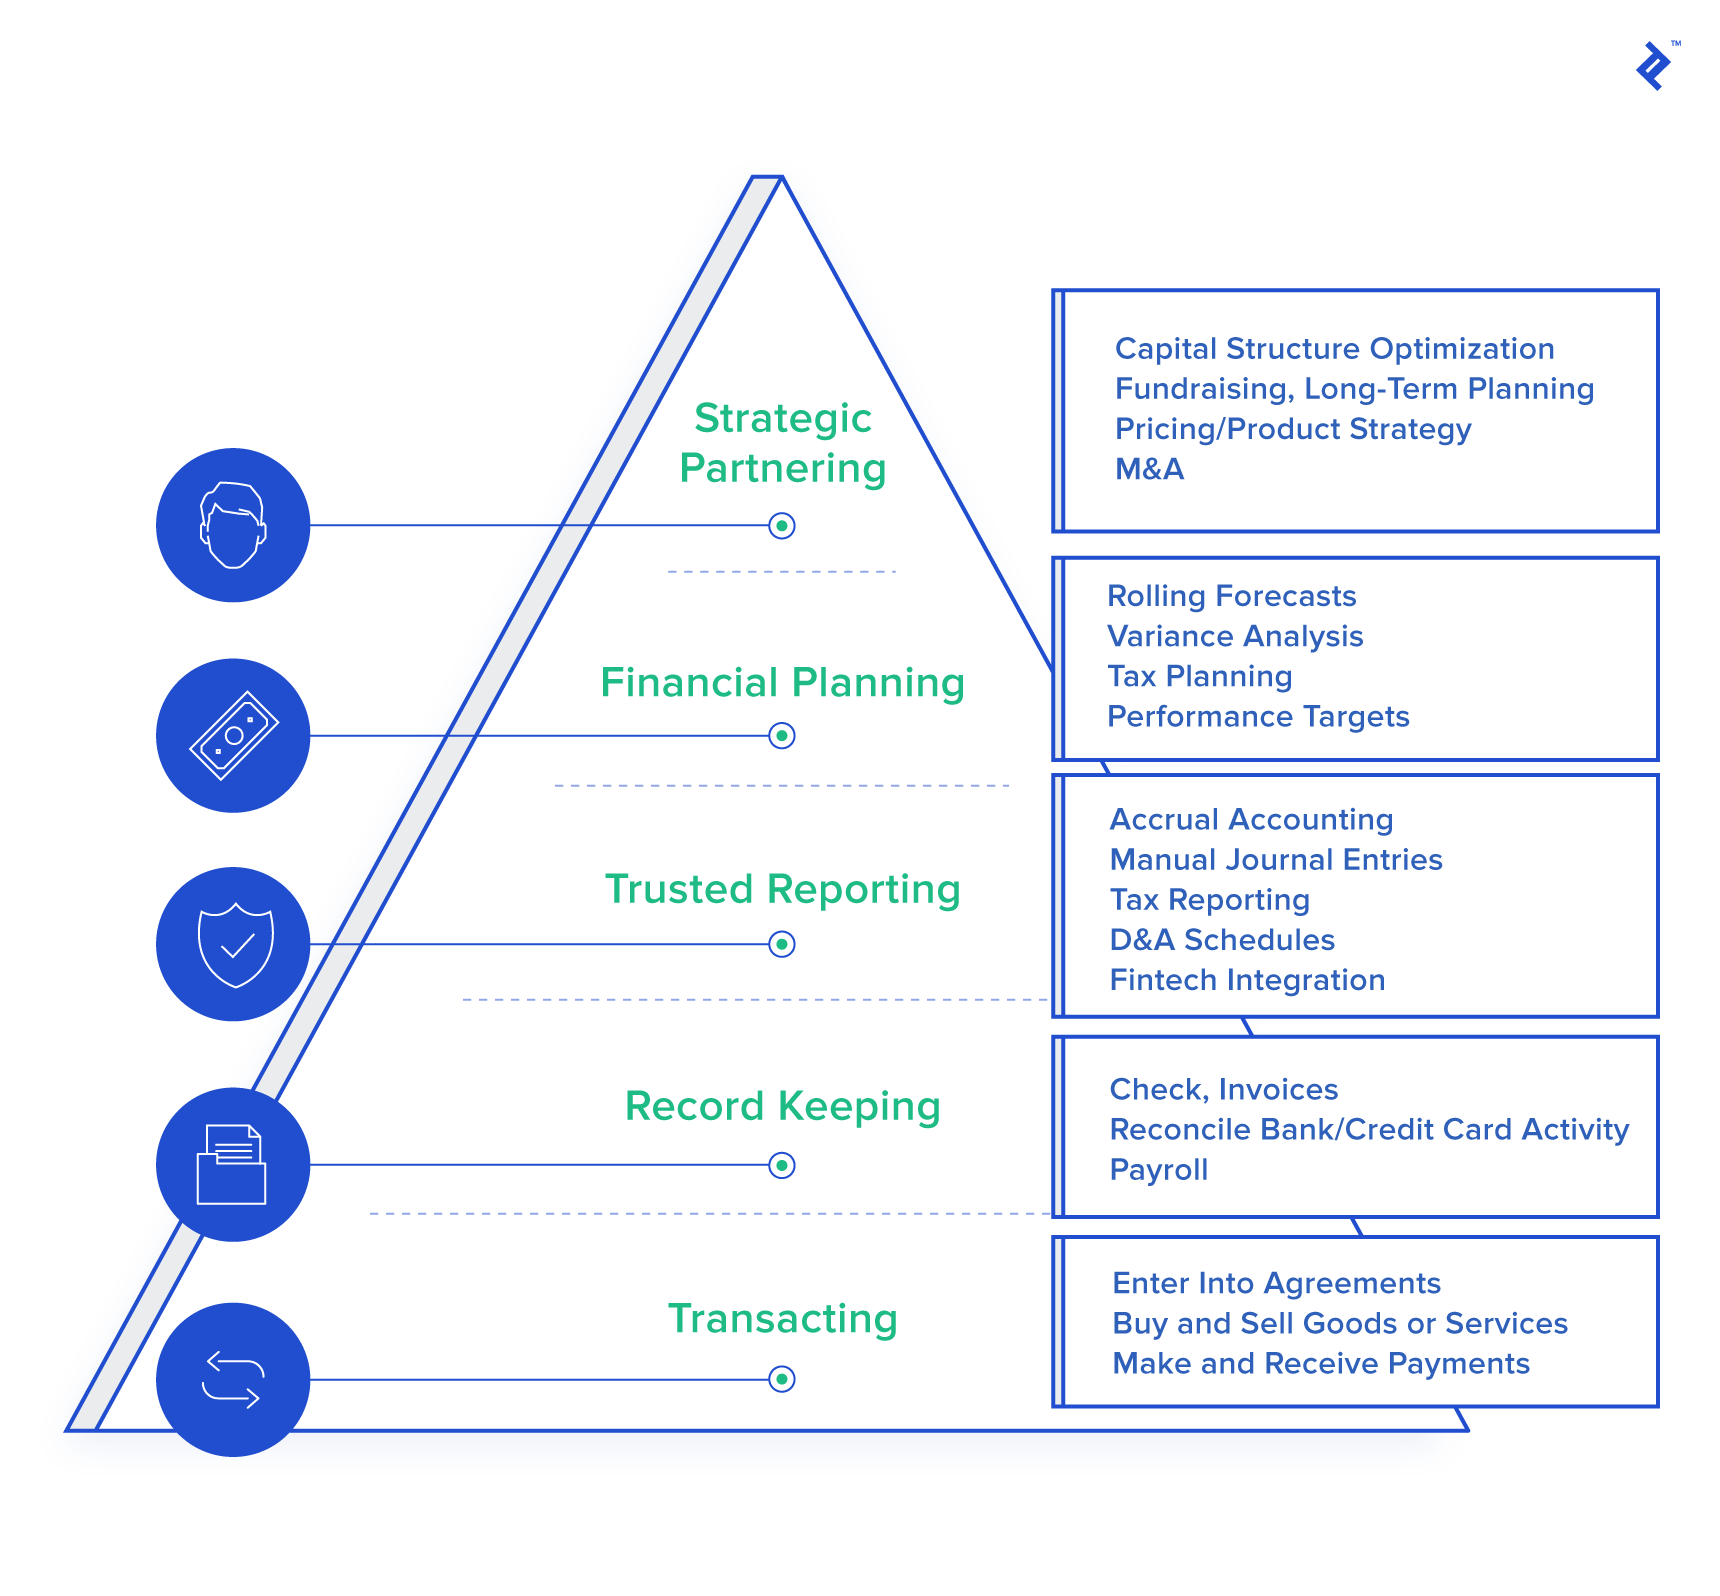 A chart depicting a business' hierarchy of financial management needs.